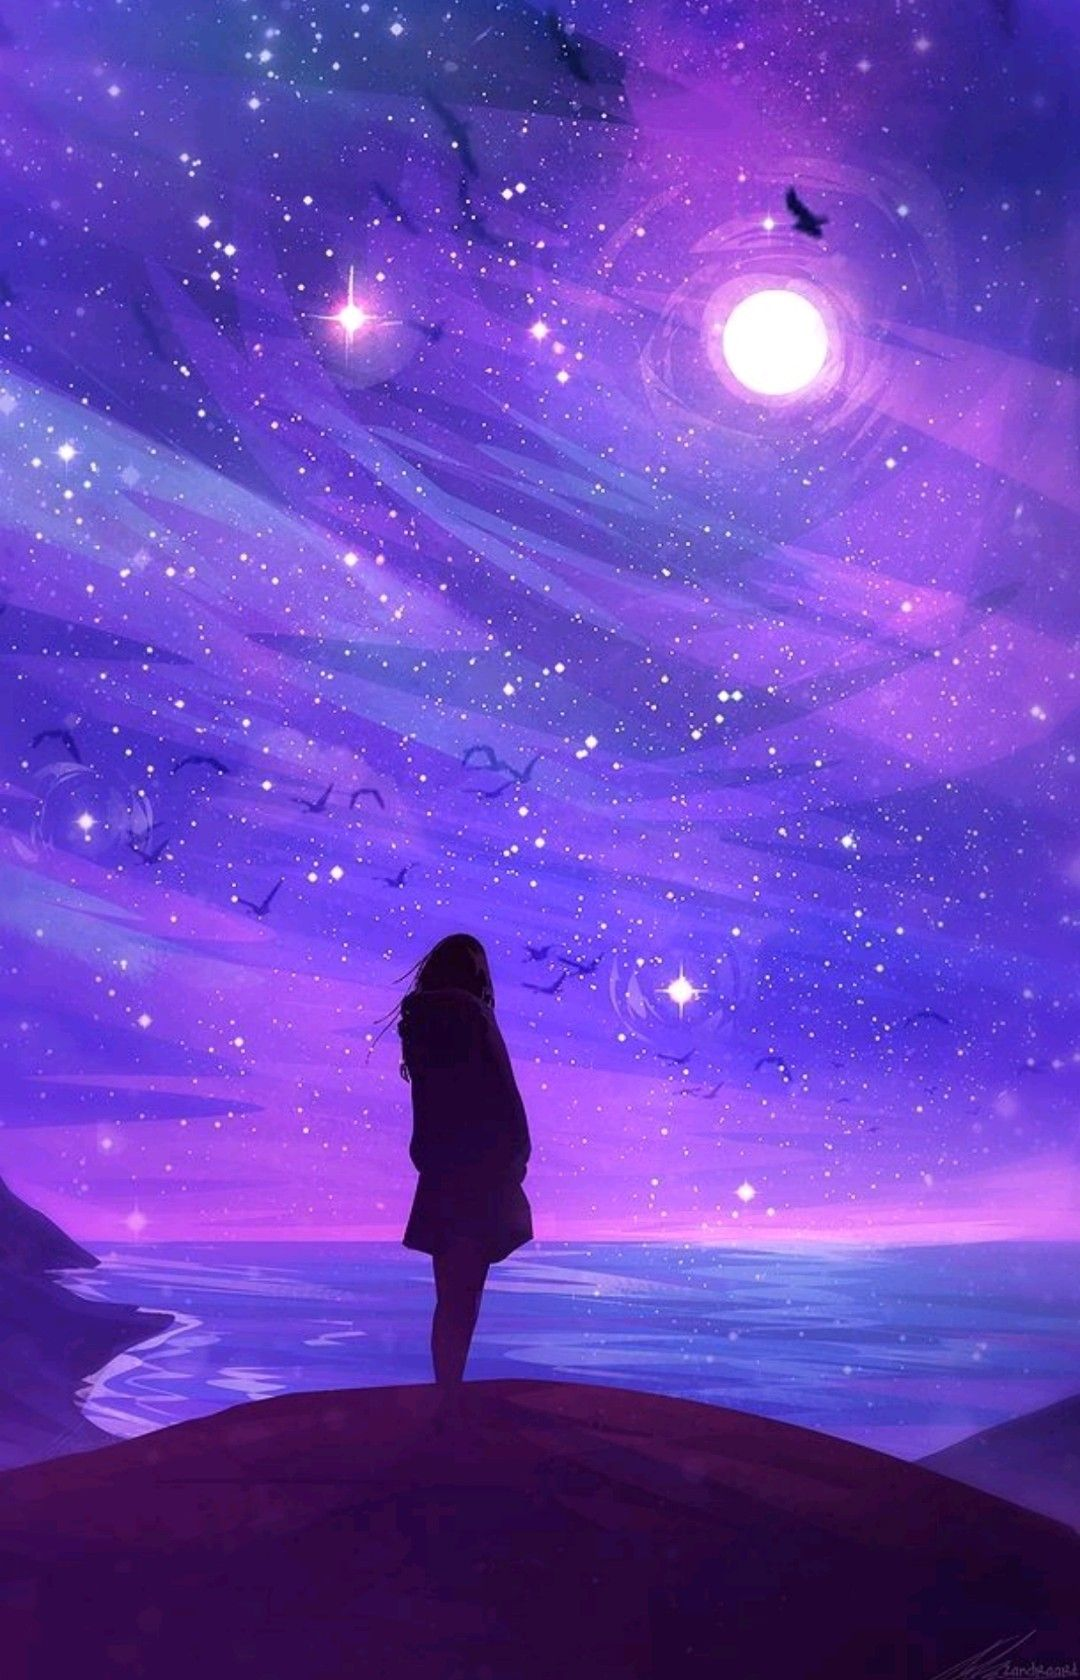 Girl Silhouette Countless Stars Over The Shore Shining Brightly